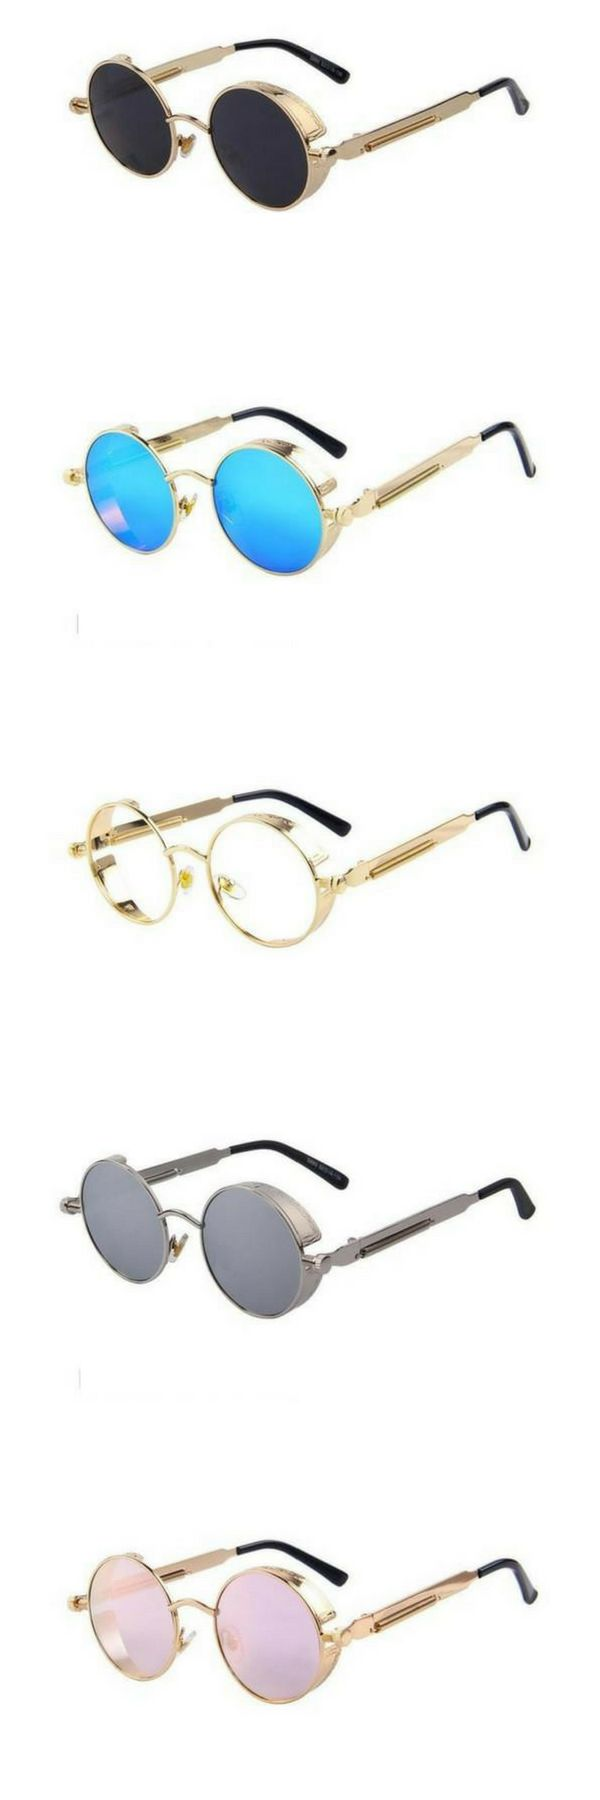 Look As Cool As You Want With These Retro Steampunk Sunglasses  round sunglasses | round sunglasses outfit | round sunglasses vintage | round sunglasses ray ban | round sunglasses women | steampunk sunglasses | steampunk sunglasses women | steampunk sunglasses diy | steampunk sunglasses ray bans | steampunk sunglasses outfit | Steampunk Sunglasses | Steampunk Sunglasses   #steampunk #eyewearfashion #sunglasses #eyewear #trendingnow #Deals #inexpensive